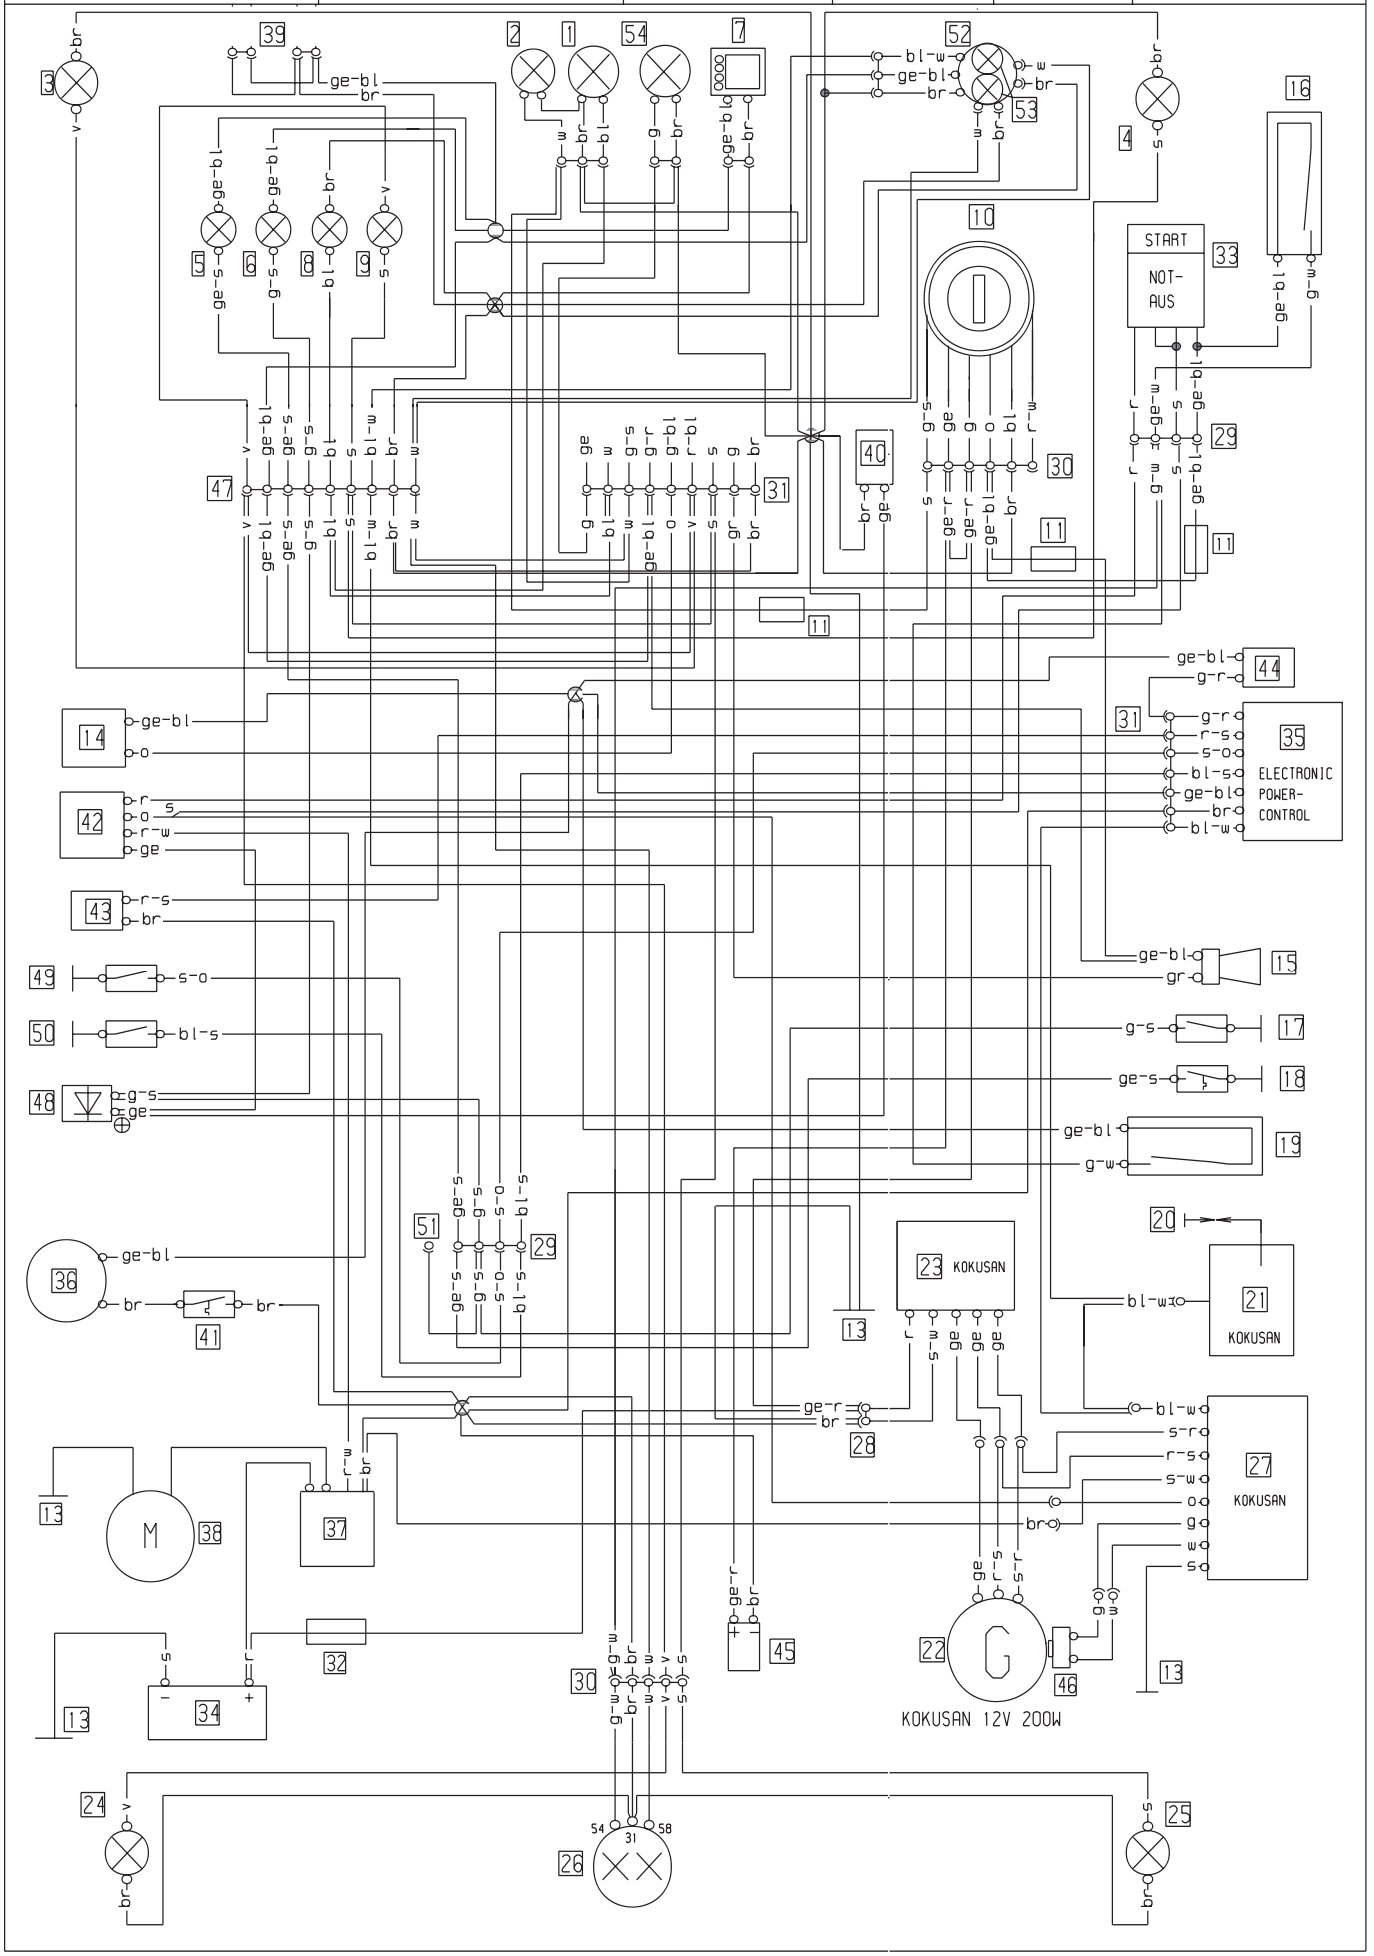 Ktm 640 Lc4 Wiring Diagram Wiring Diagram